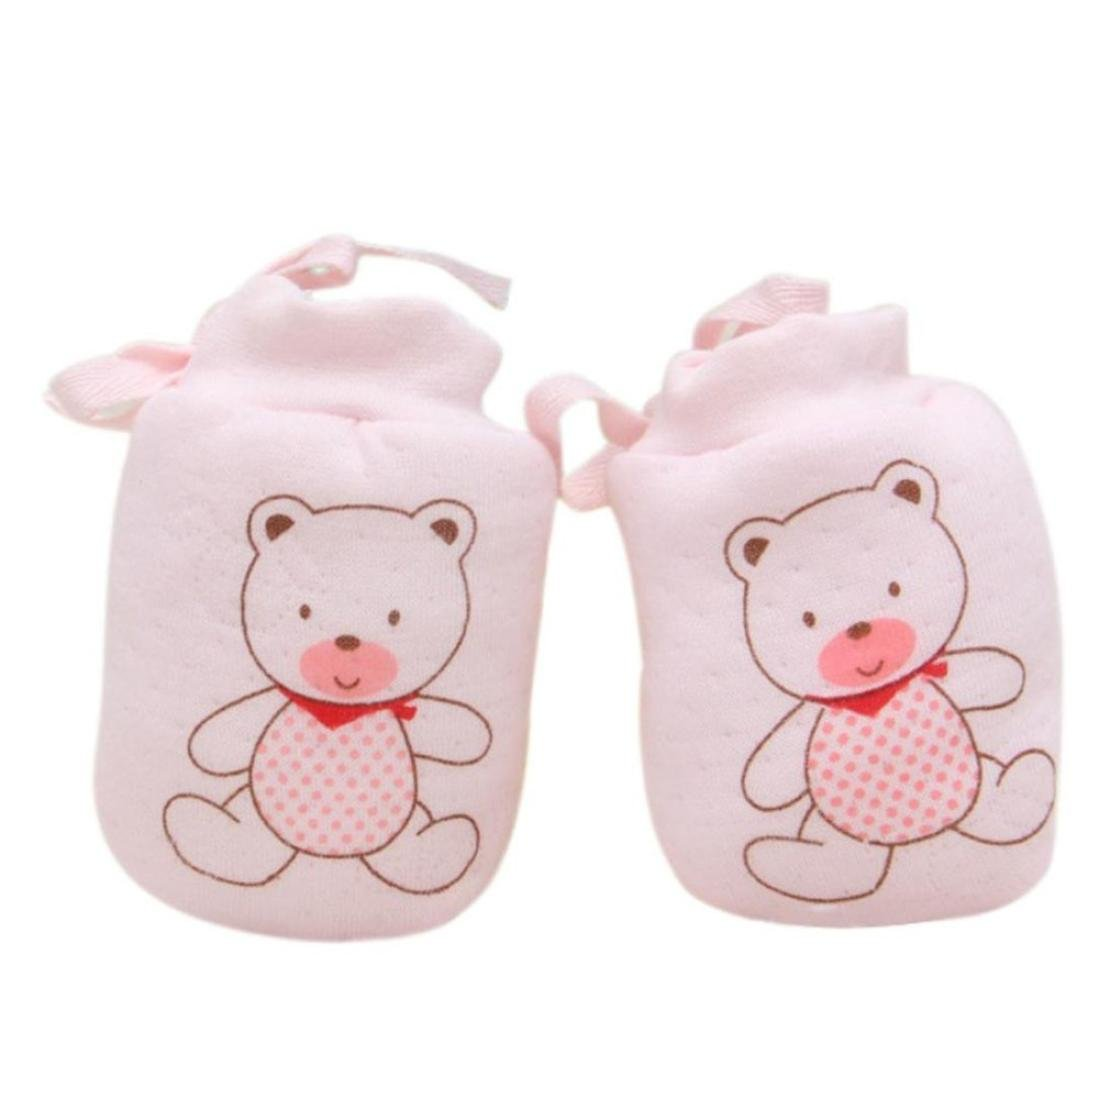 Kolylong 1 Pairs Cartoon Baby Anti Scratch Mittens Soft Newborn Rope Thickness Gloves Gift Kolylong-JI5